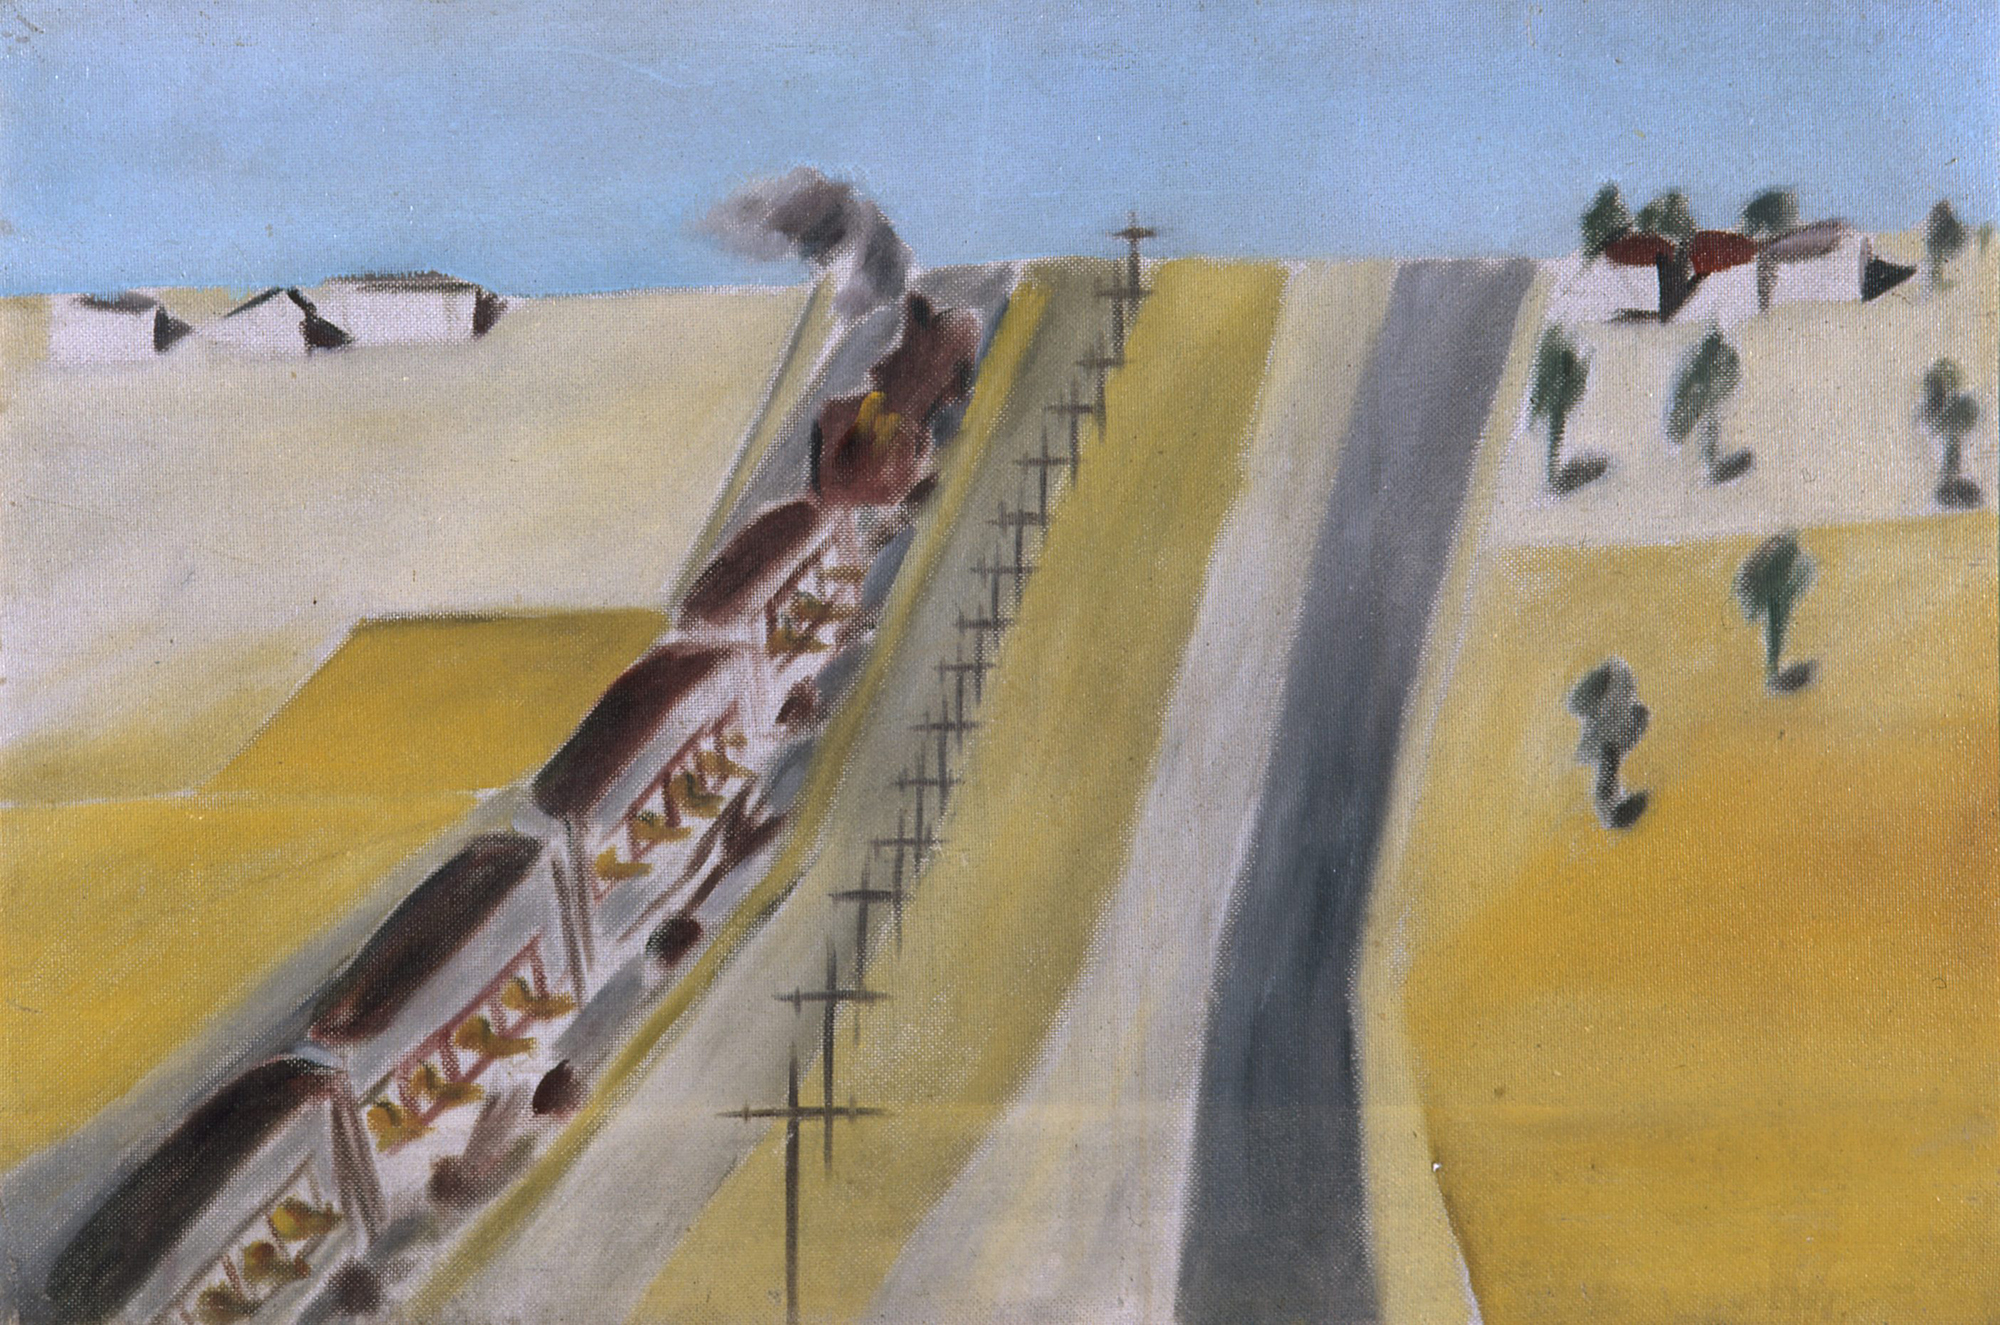 Sidney Nolan  Wimmera Landscape (Landscape with Train)  1943 Ripolin enamel on composition board 61 x 91 cm Heide Museum of Modern Art, Melbourne Purchased from John and Sunday Reed 1980 © Sidney Nolan TrusT